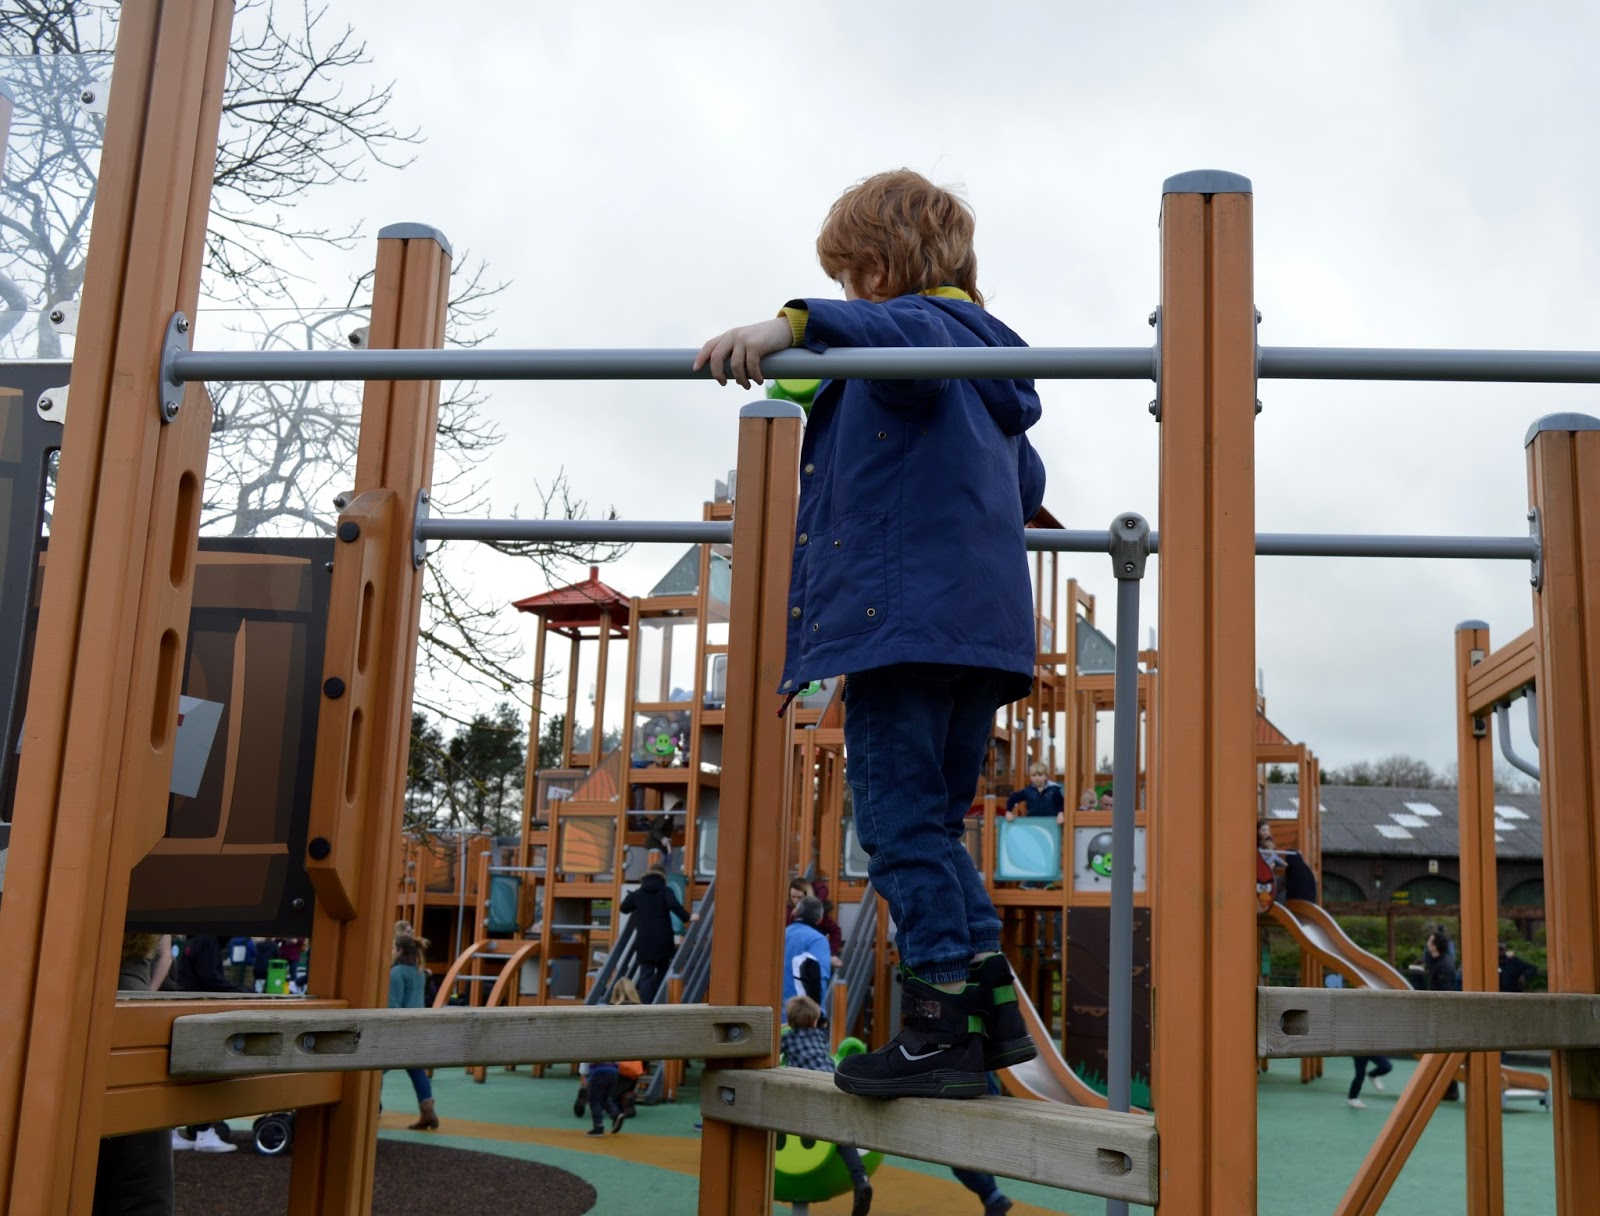 Visiting Angry Birds Activity Park at Lightwater Valley, North Yorkshire - tricky steps